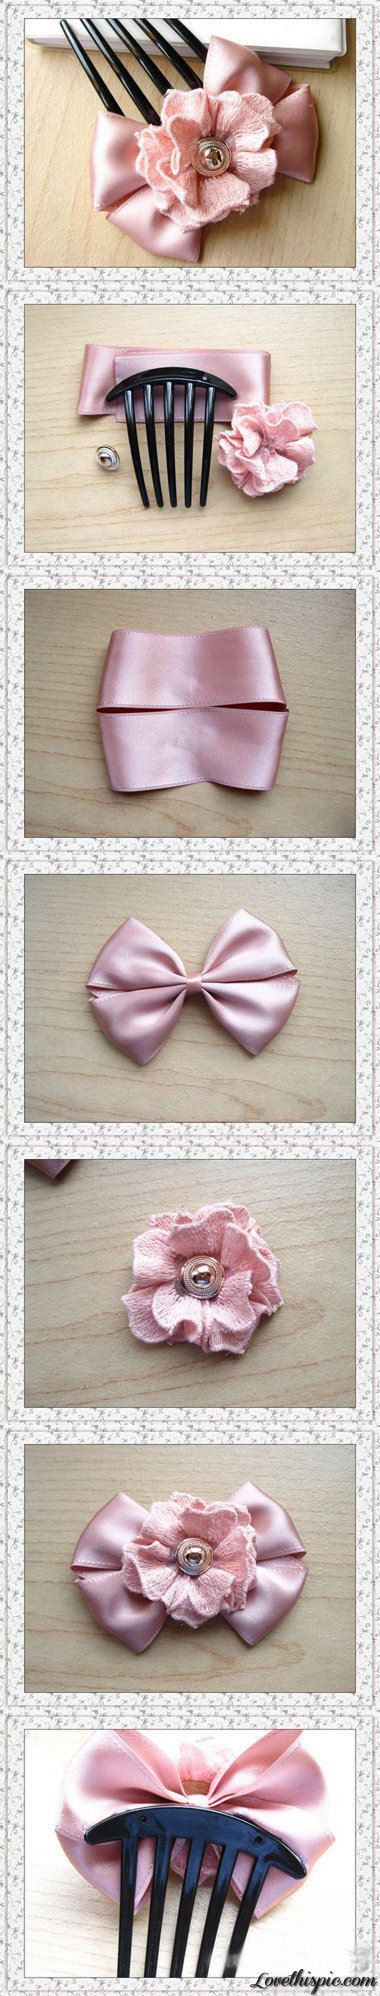 Diy hair bow diy crafts home made easy crafts craft idea crafts diy hair bow diy crafts home made easy crafts craft idea crafts ideas diy ideas diy crafts diy idea do it yourself diy projects diy craft handmade solutioingenieria Image collections